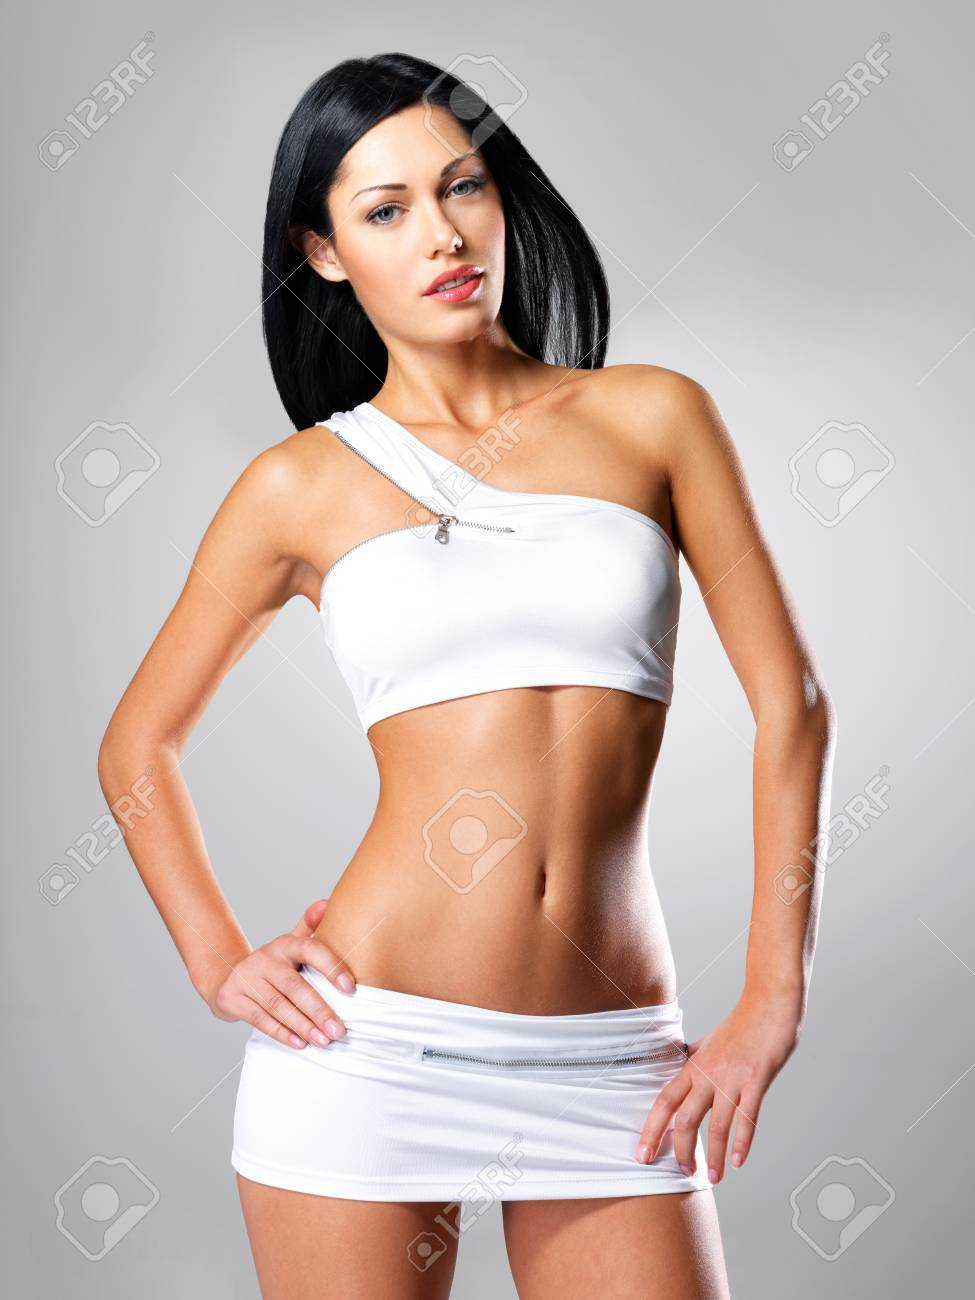 Pretty woman with beautiful slim tanned body - posing at studio on gray background Stock Photo - 16642962